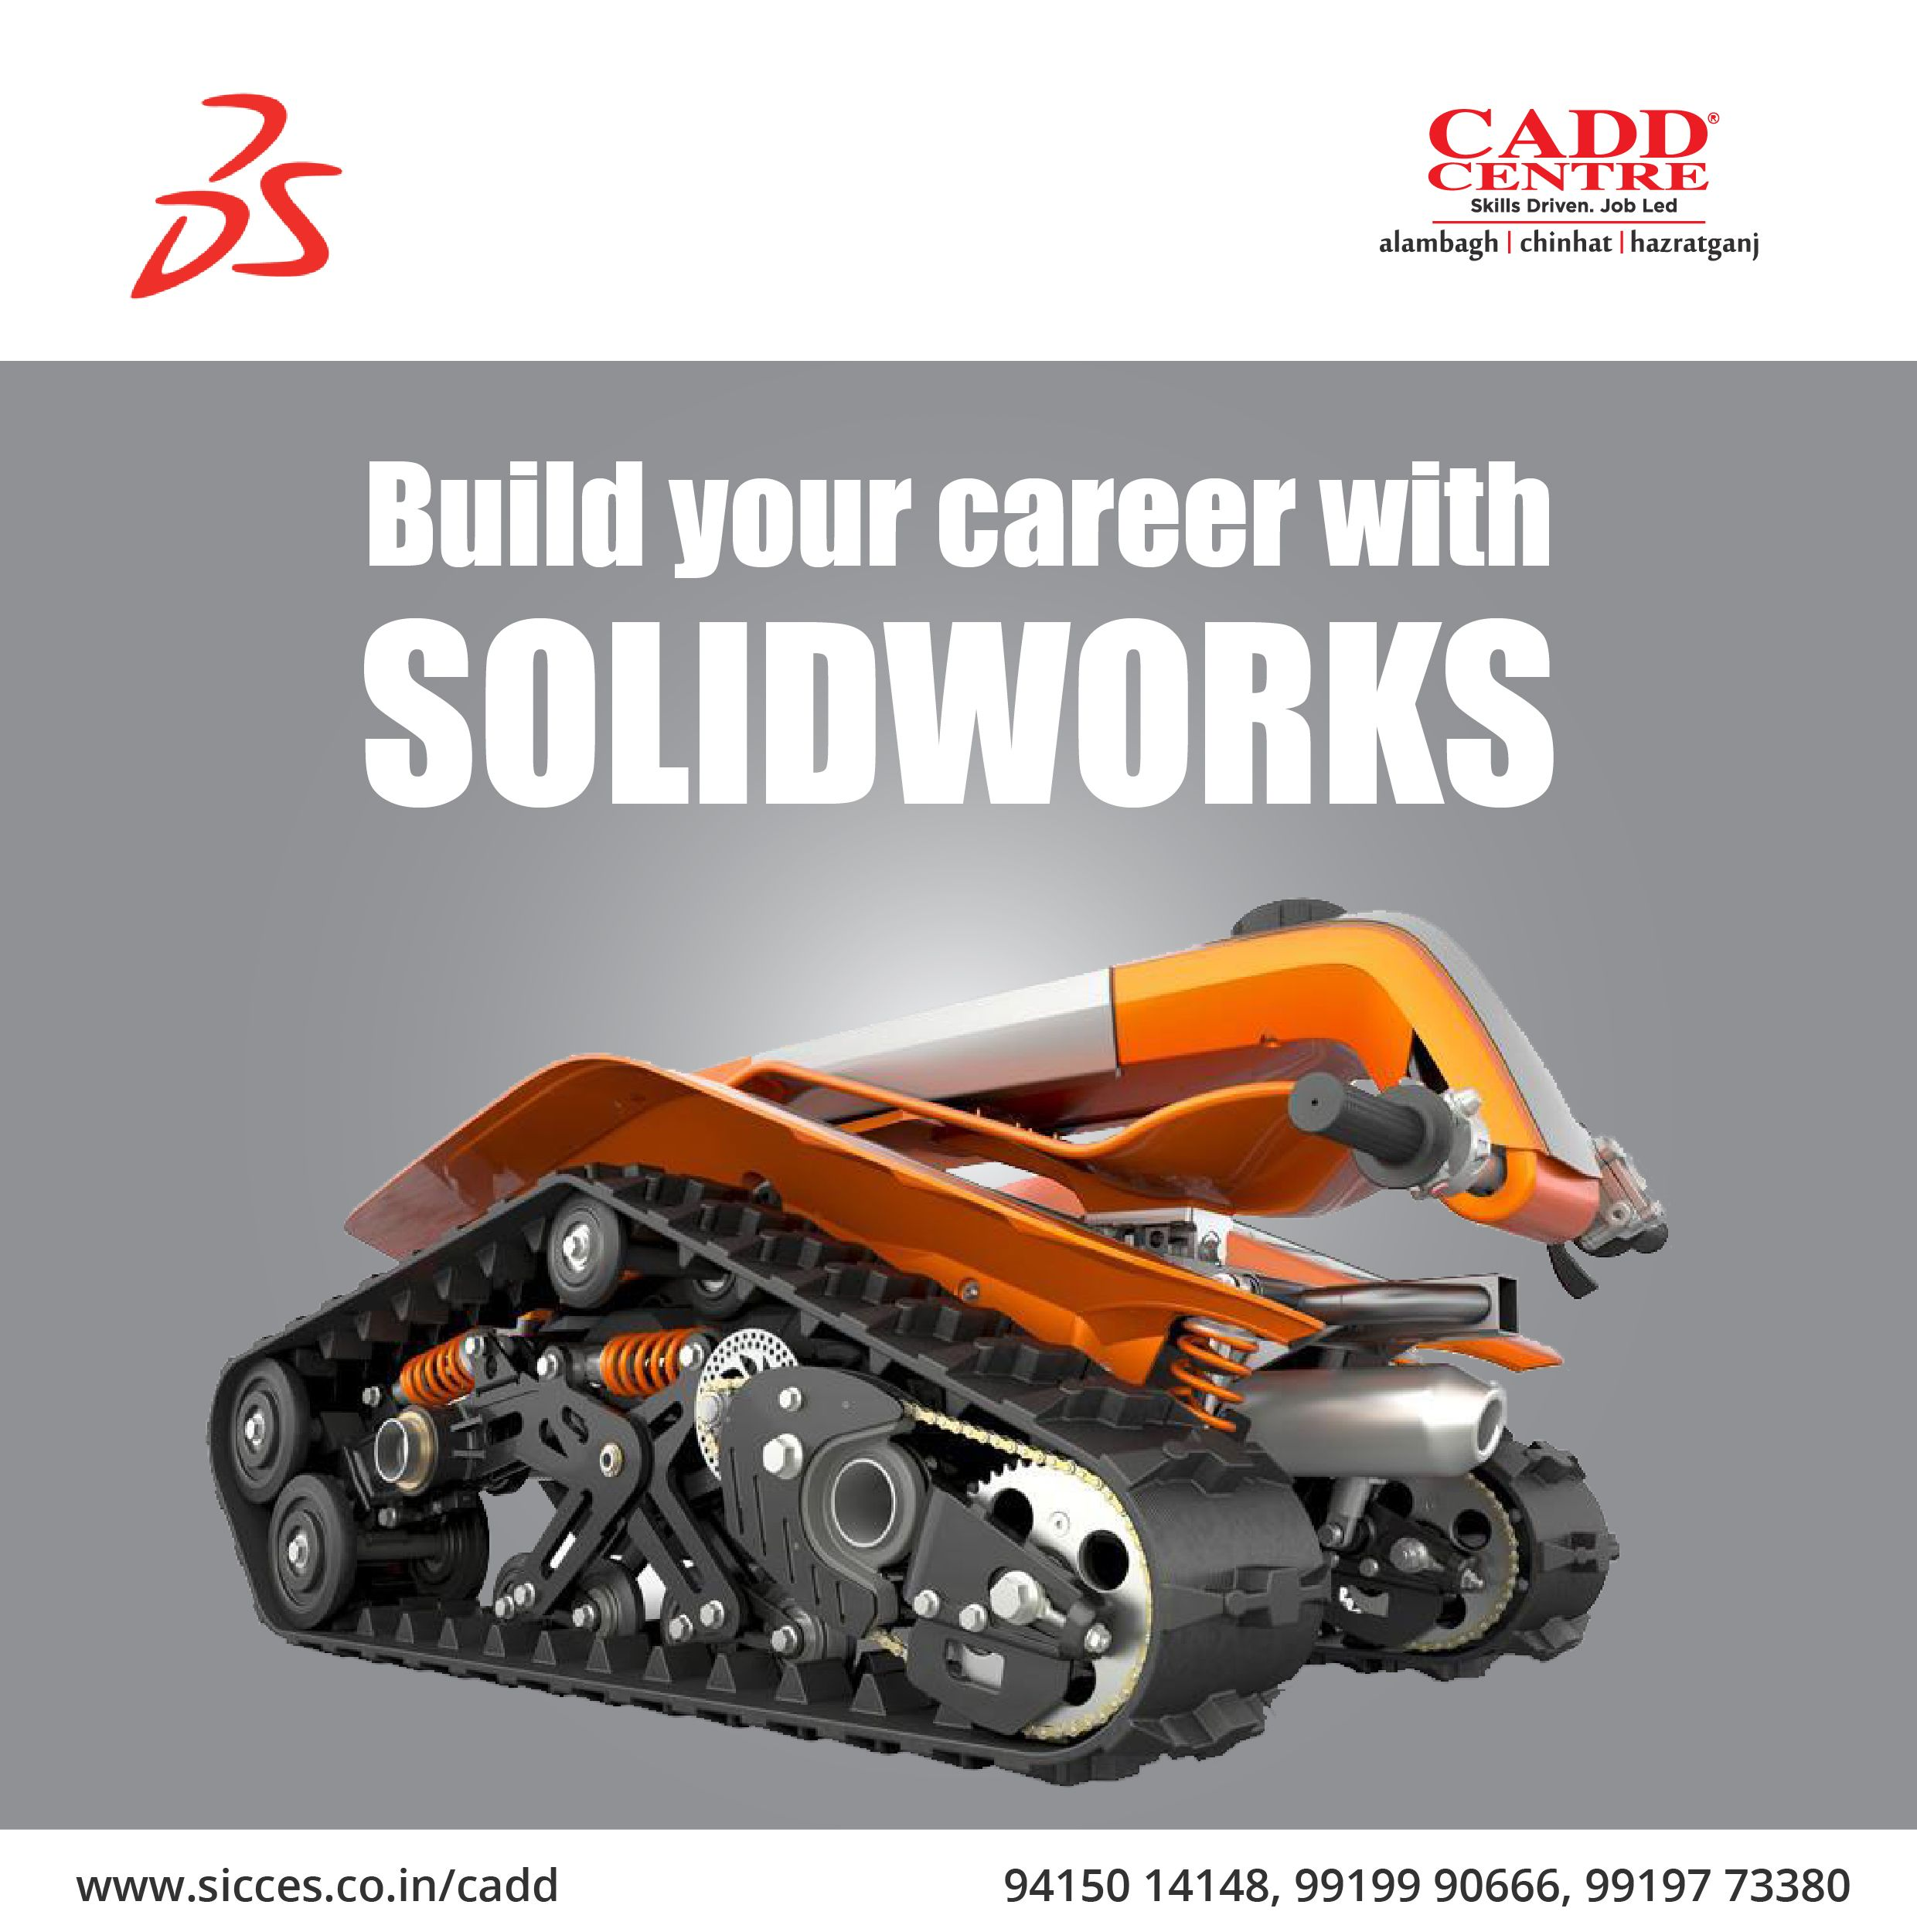 SolidWorks Is A Solid Modeling Computer-aided Design And